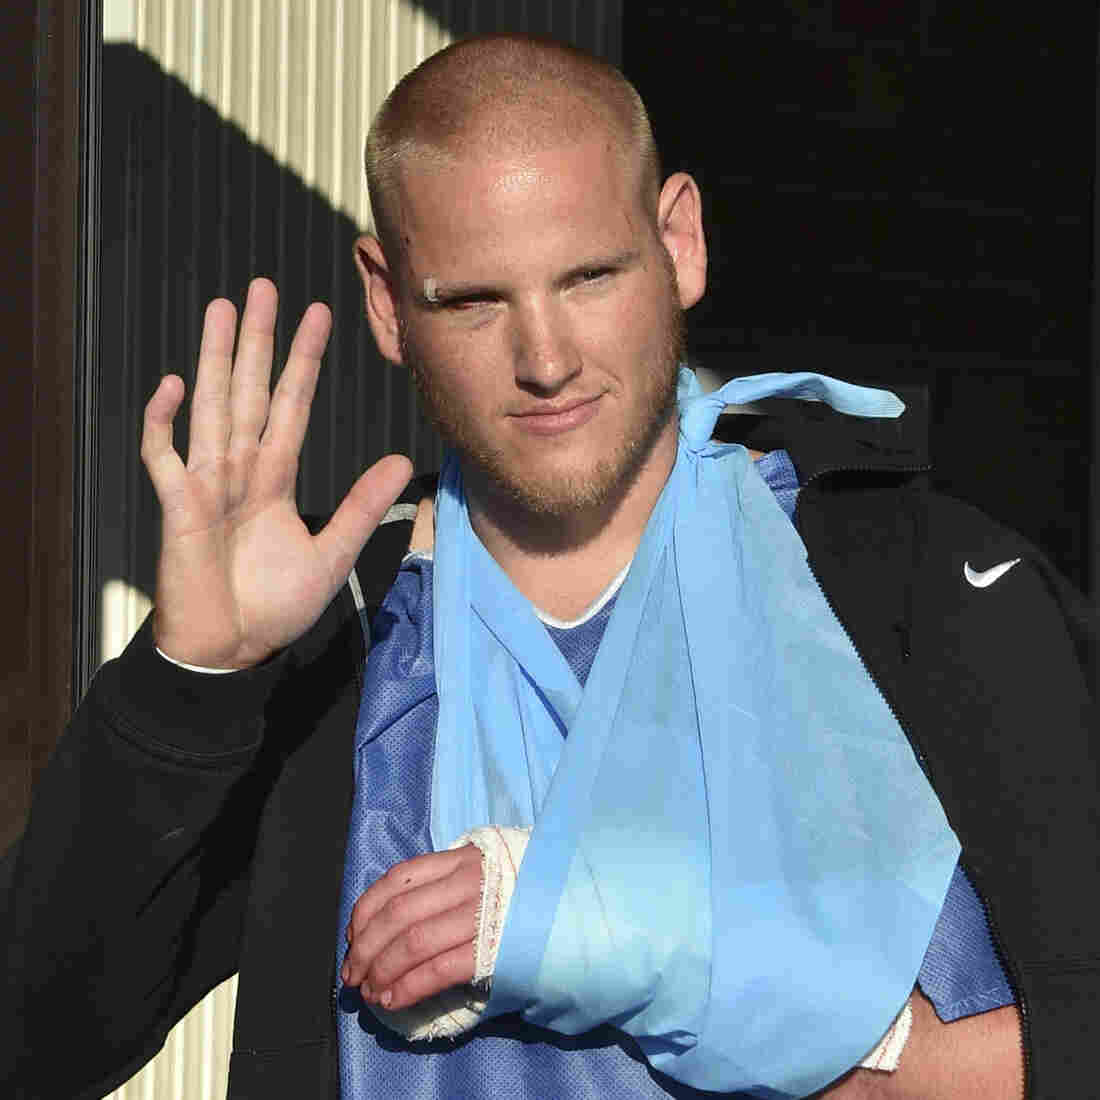 U.S. Air Force Airman First Class Spencer Stone waves as he departs the Clinique Lille Sud, which specializes in hand injuries, in Lesquin, France, on Saturday. He was one of several men who helped subdue the train assailant.